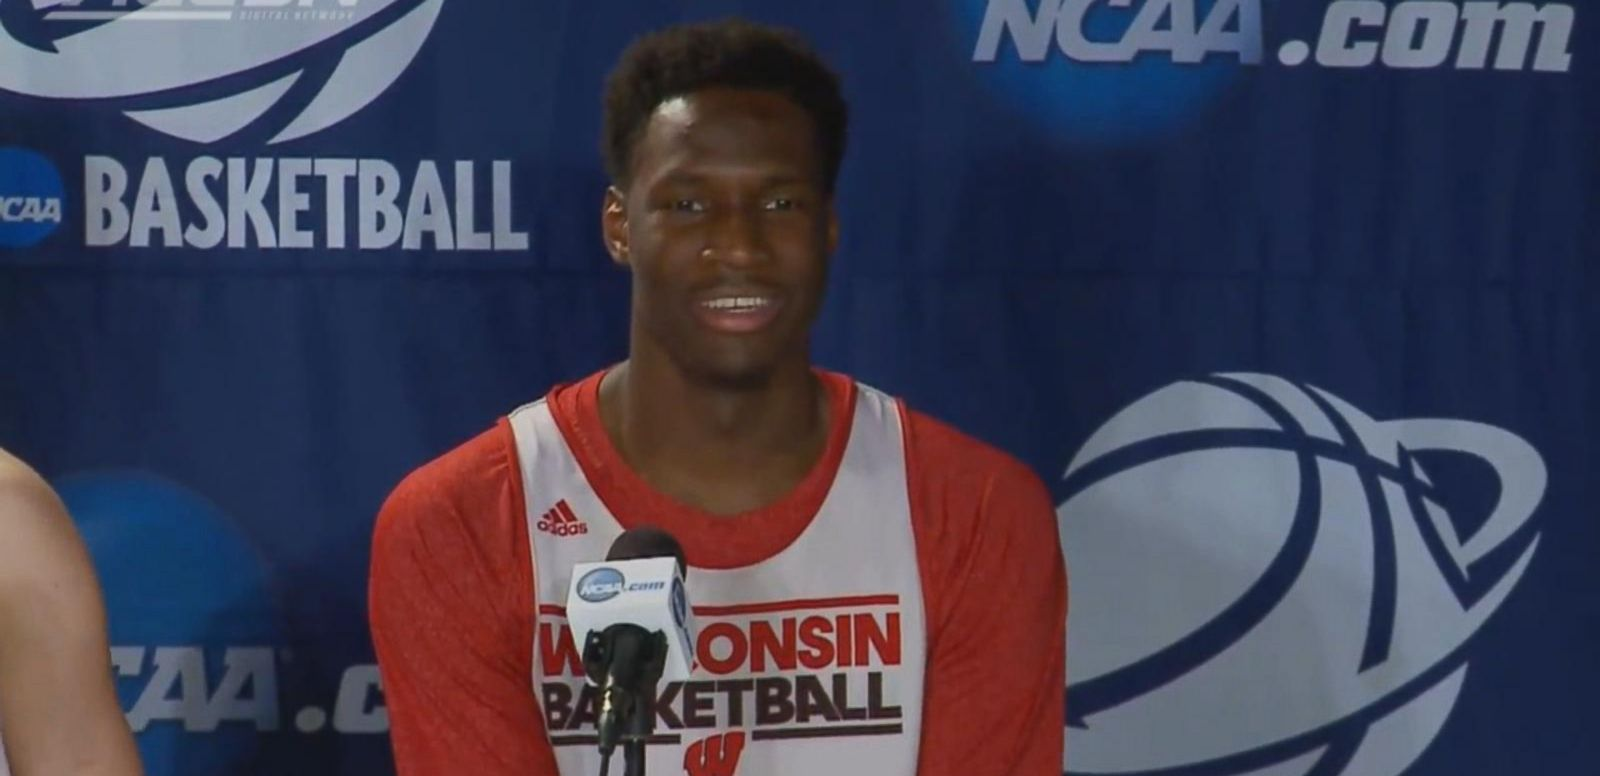 VIDEO: March Madness: Wisconsin Badger Nigel Hayes Whispers a Little Too Loudly